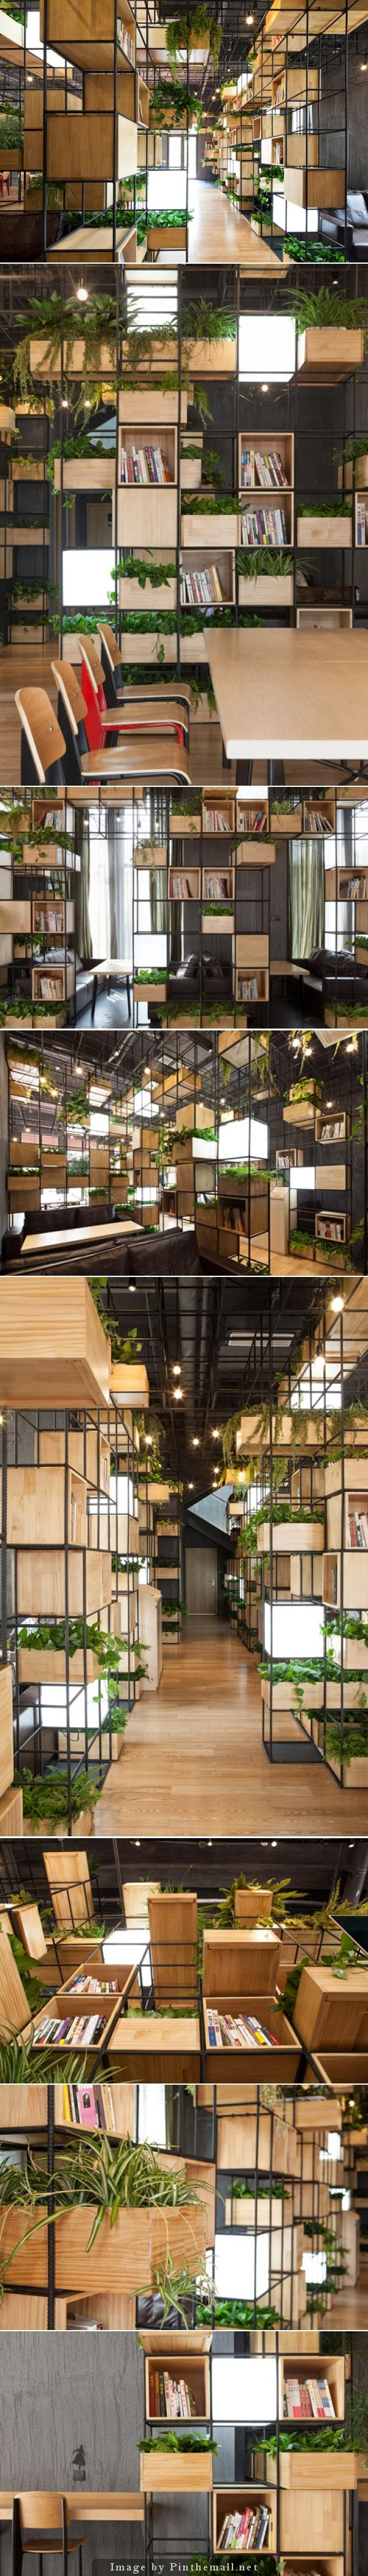 PENDA - Modular shelves & planters - Wooden box shelves and planters and light cubes populate a gridded metal framework